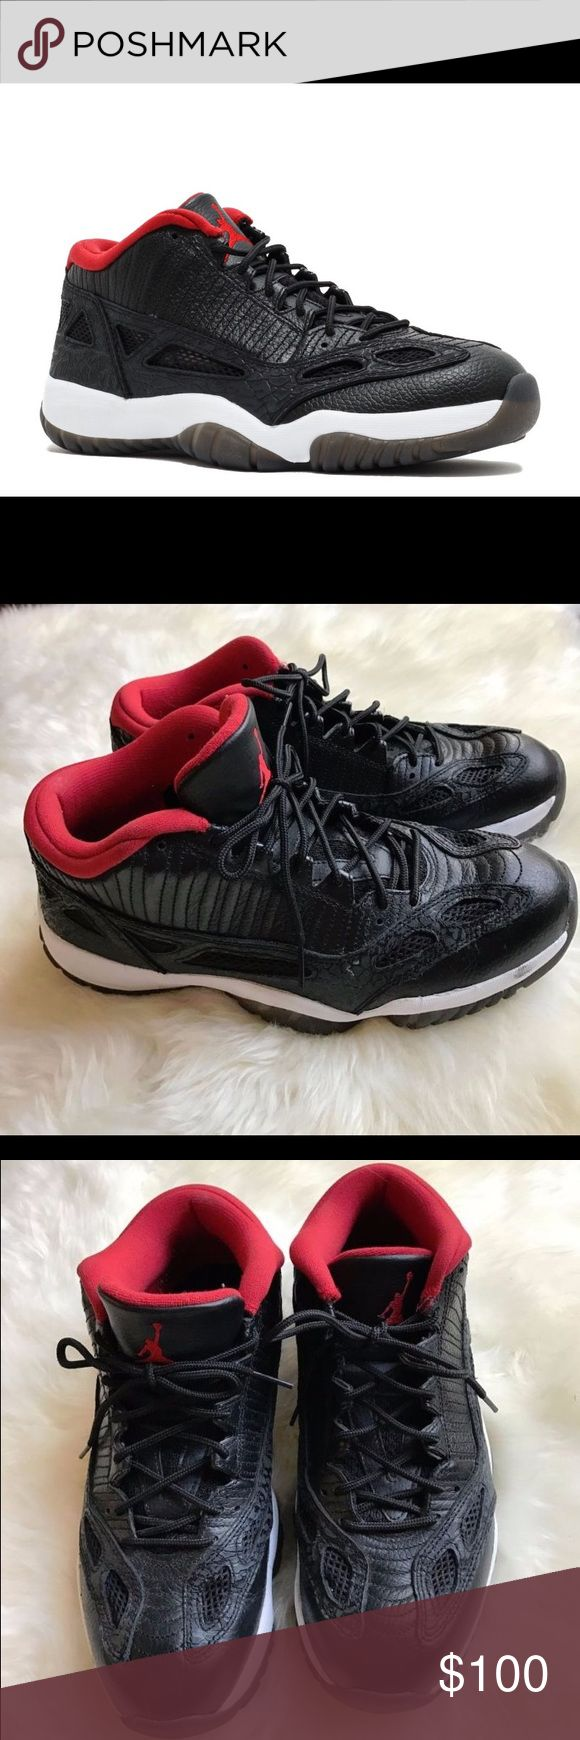 Men's Nike Air Jordan Retro 11 Low IE Shoes Men's 2011 Nike Air Jordan Retro 11 XI Low IE Black/Red Shoes Size 9.5. Model # 306008-001. Color - black, red, white. Good pre-owned condition - right shoe has a little scratch on the front (can be seen in the pictures). Jordan Shoes Sneakers